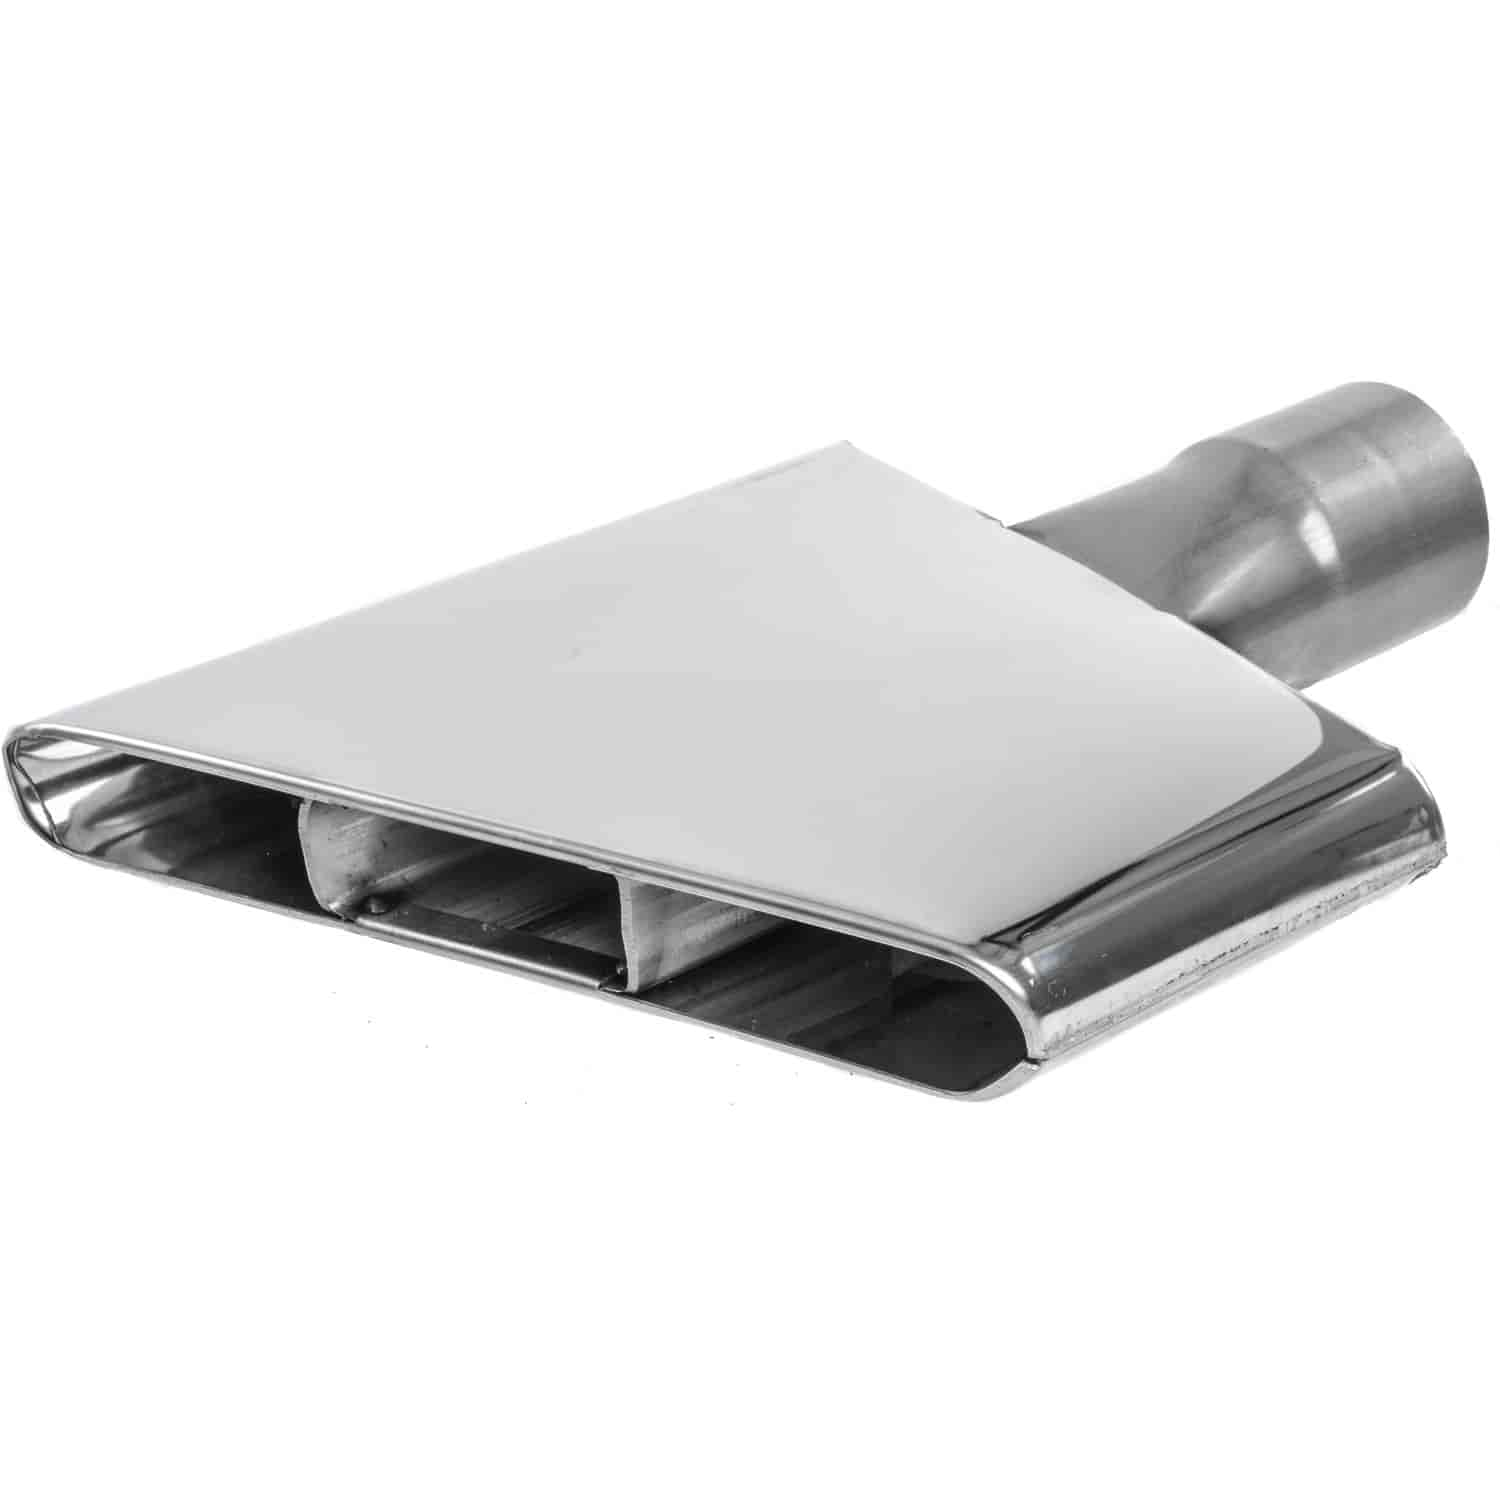 JEGS Performance Products 30971 - JEGS Thunder Exhaust Stainless Steel Exhaust Tips